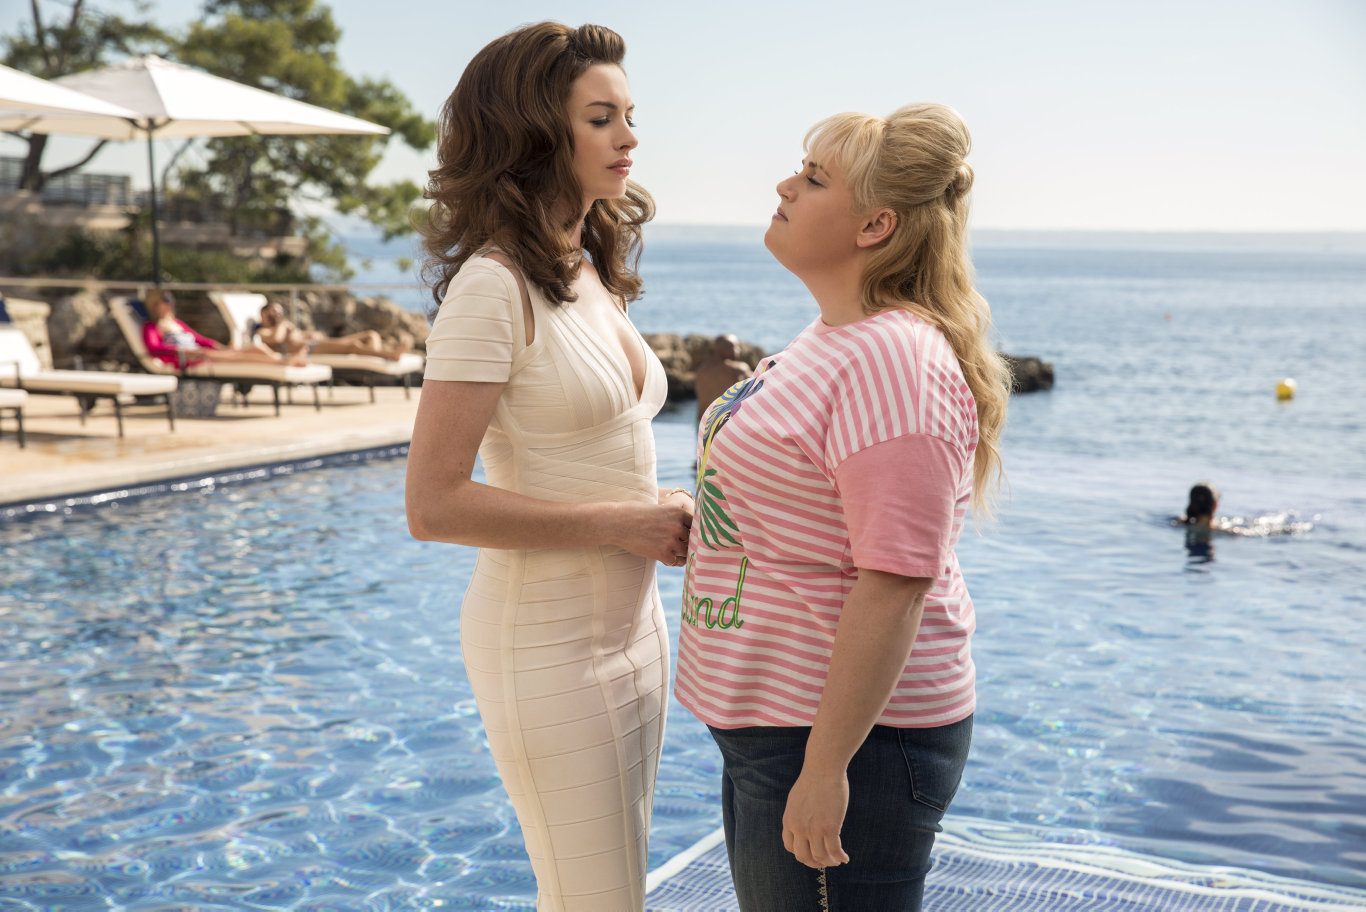 Anne Hathaway and Rebel Wilson in a scene from the movie The Hustle.